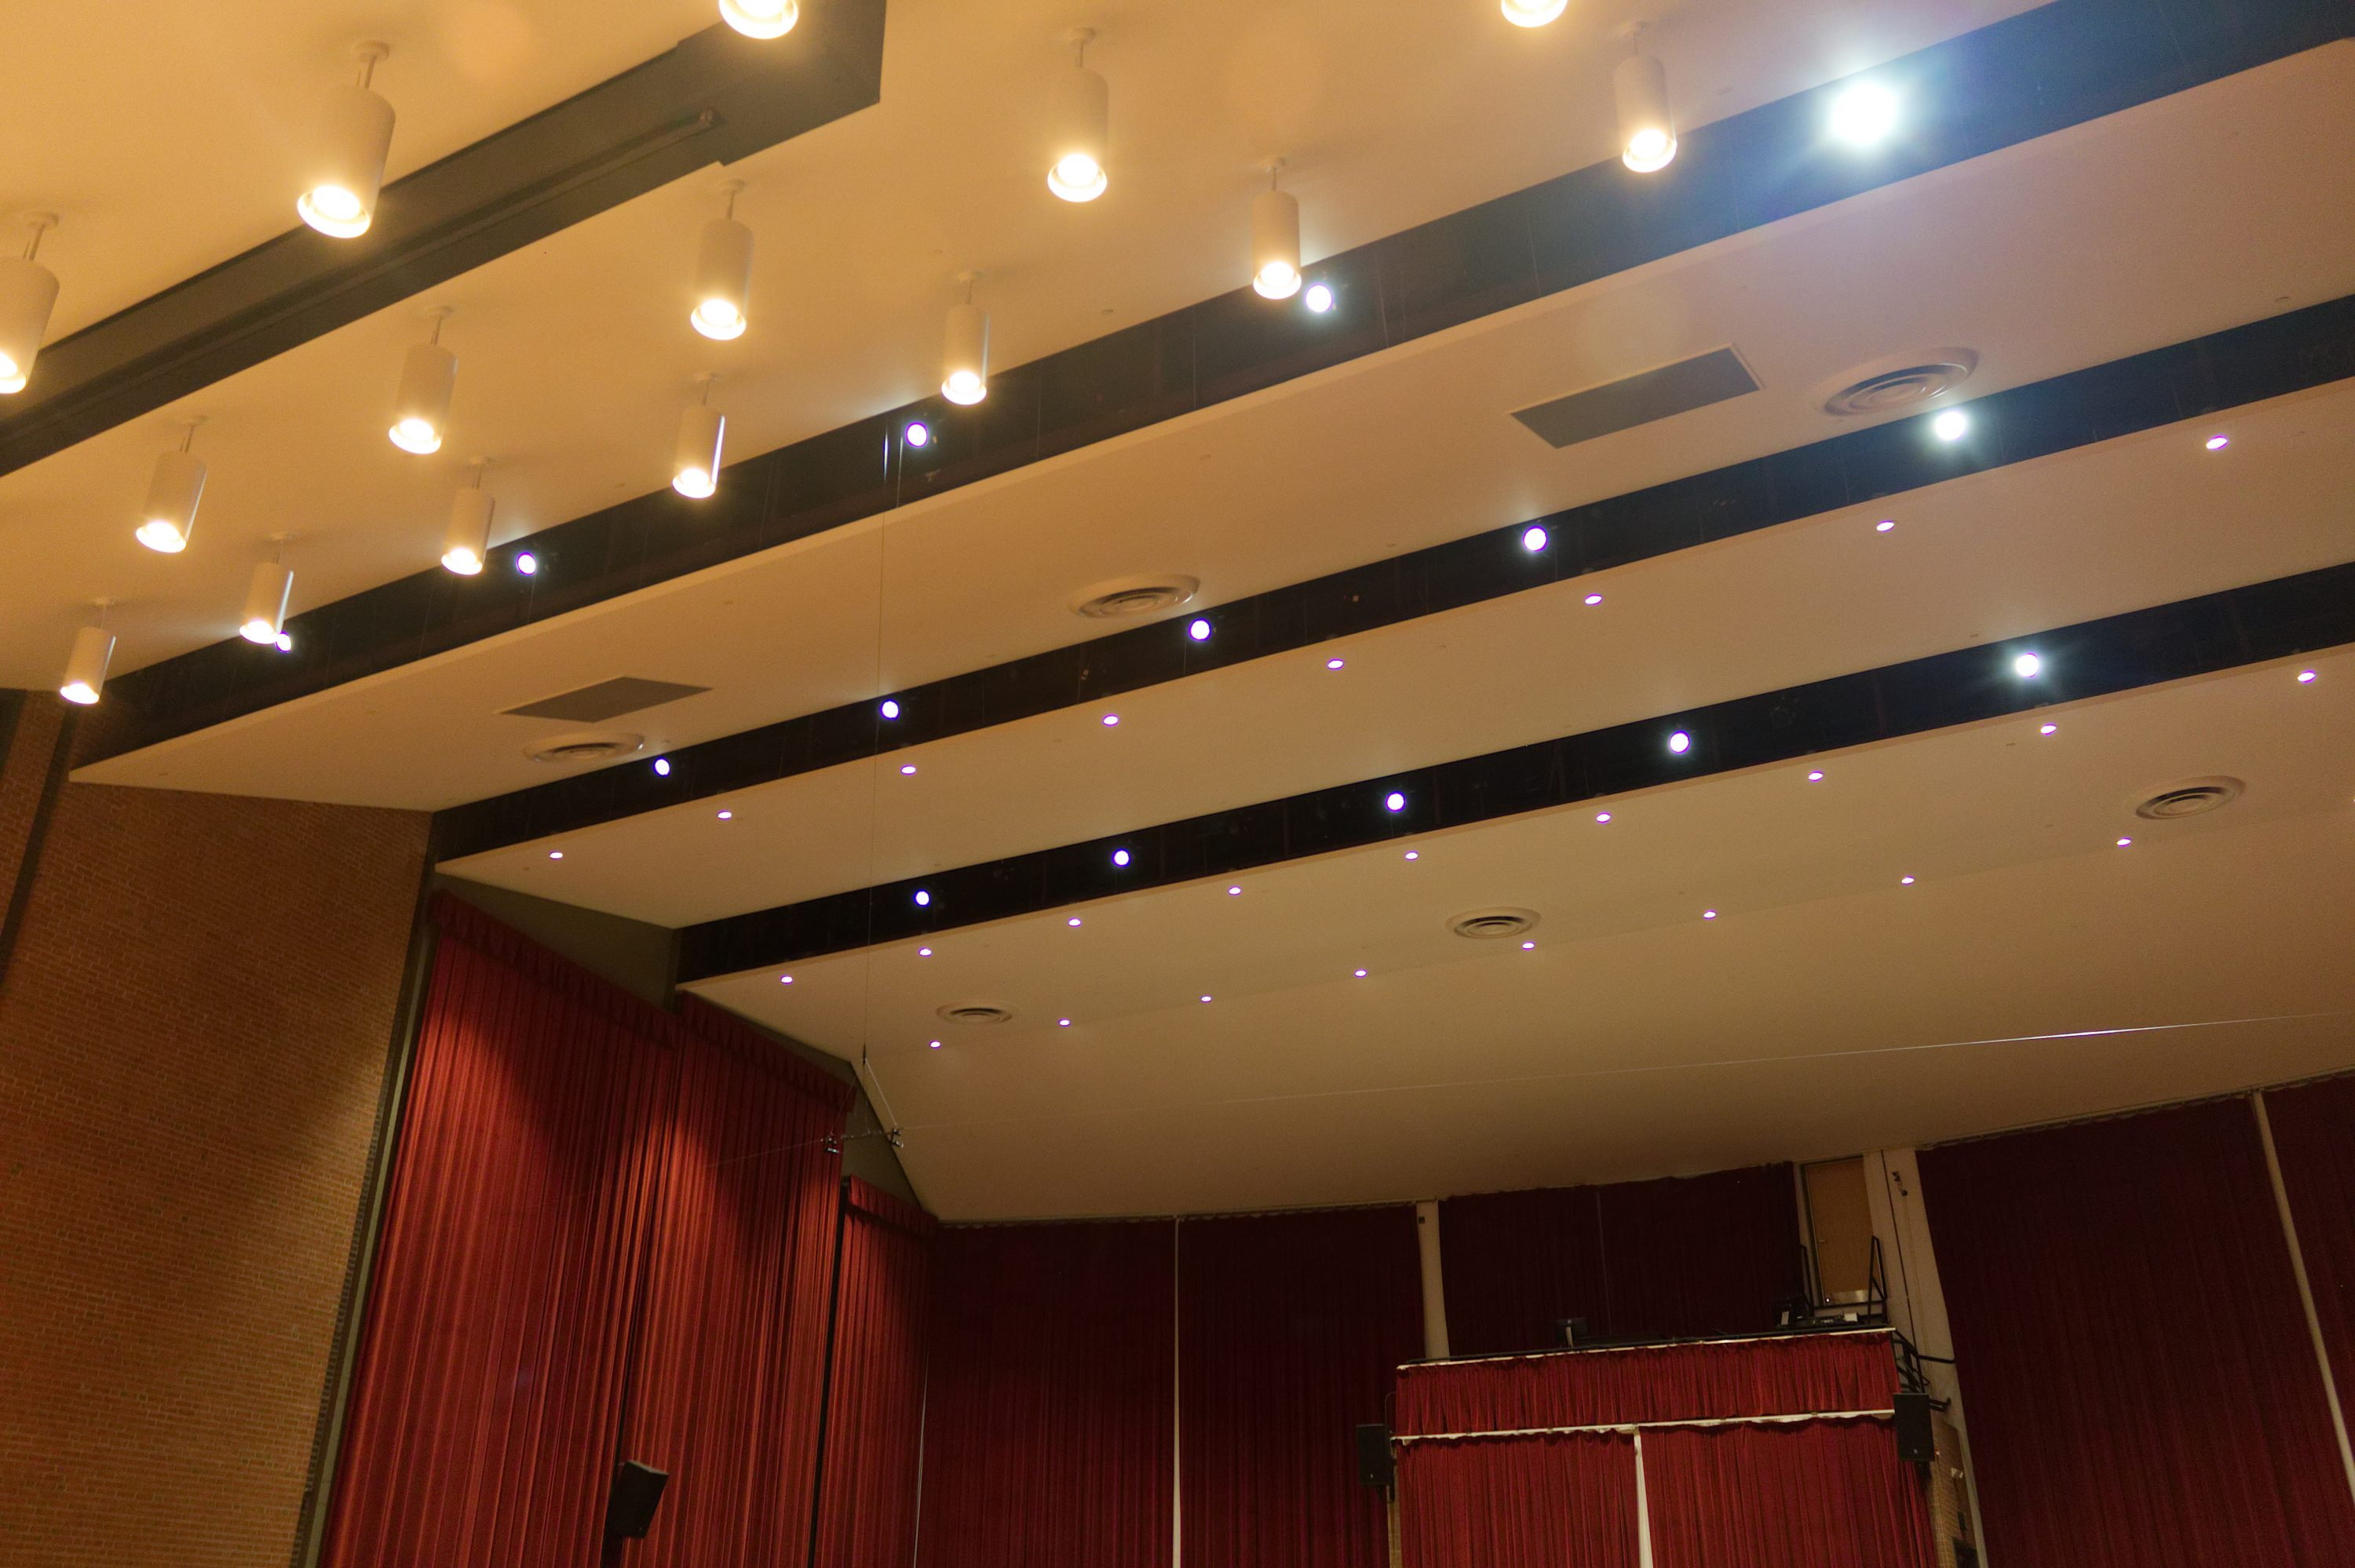 theater acoustic and lighting design towson university